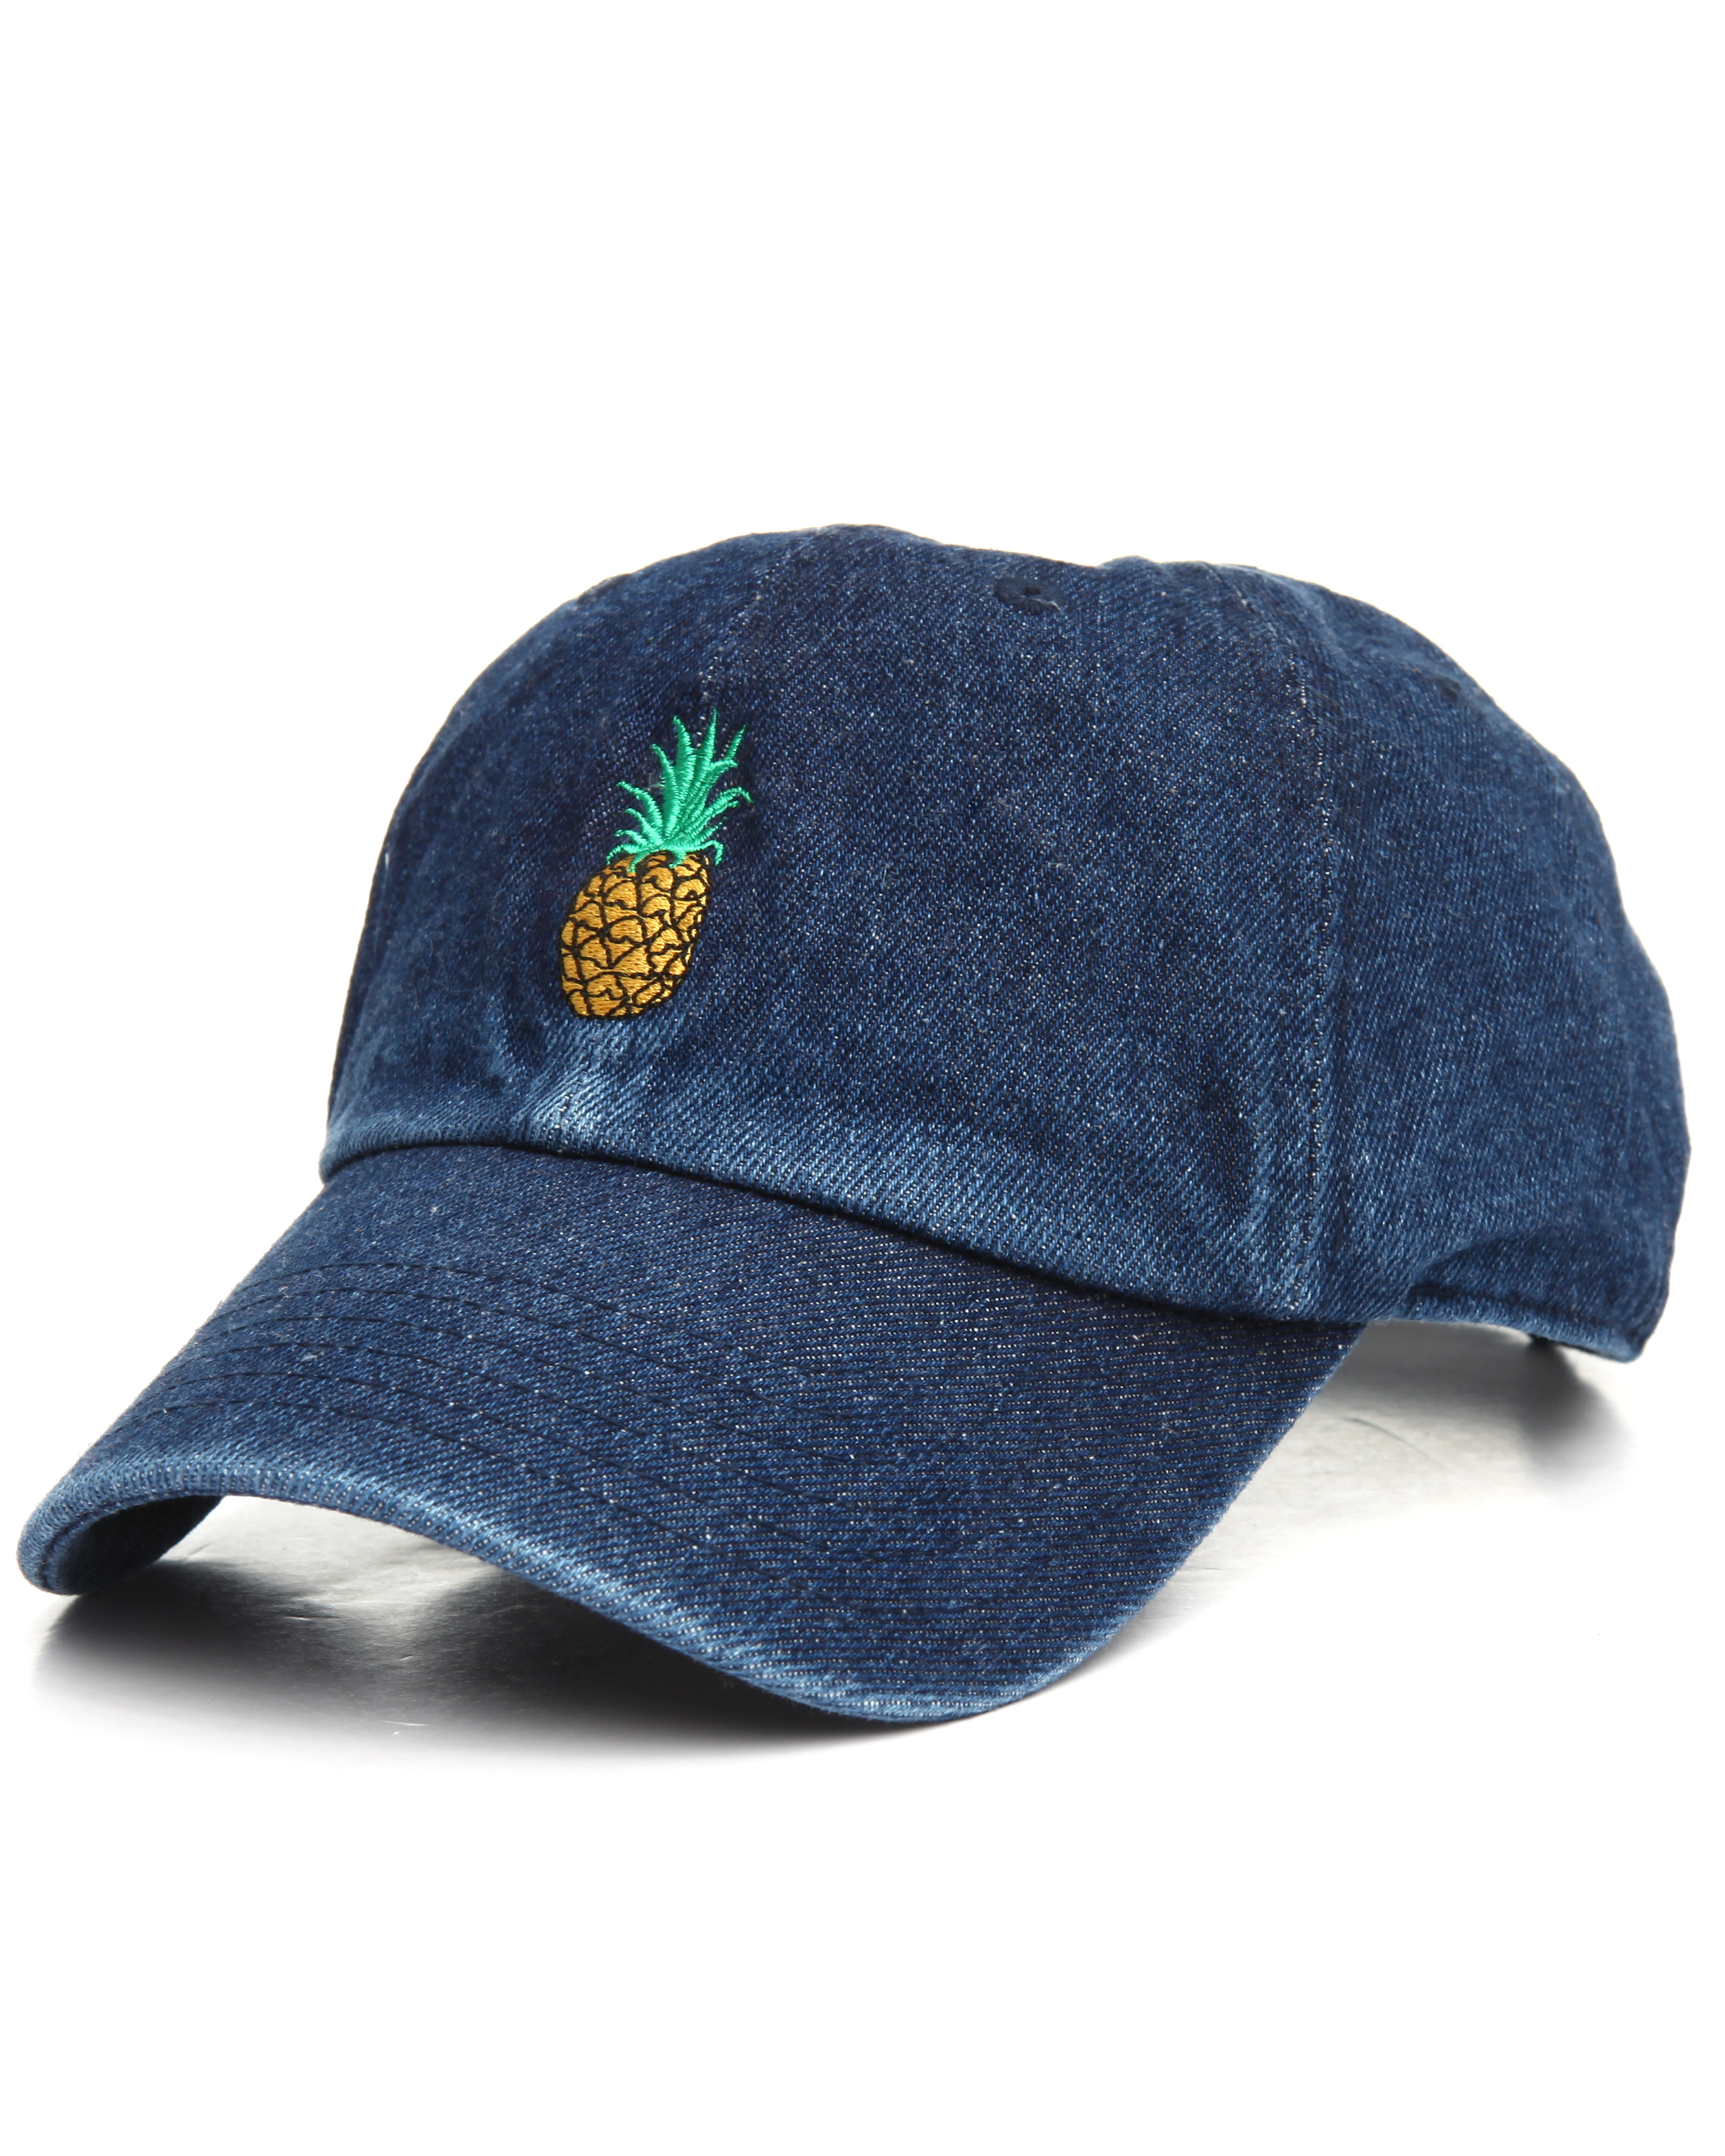 552297f49b85f8 Denim Pineapple Dad Hat · Stush Fashionista · Online Store Powered ...